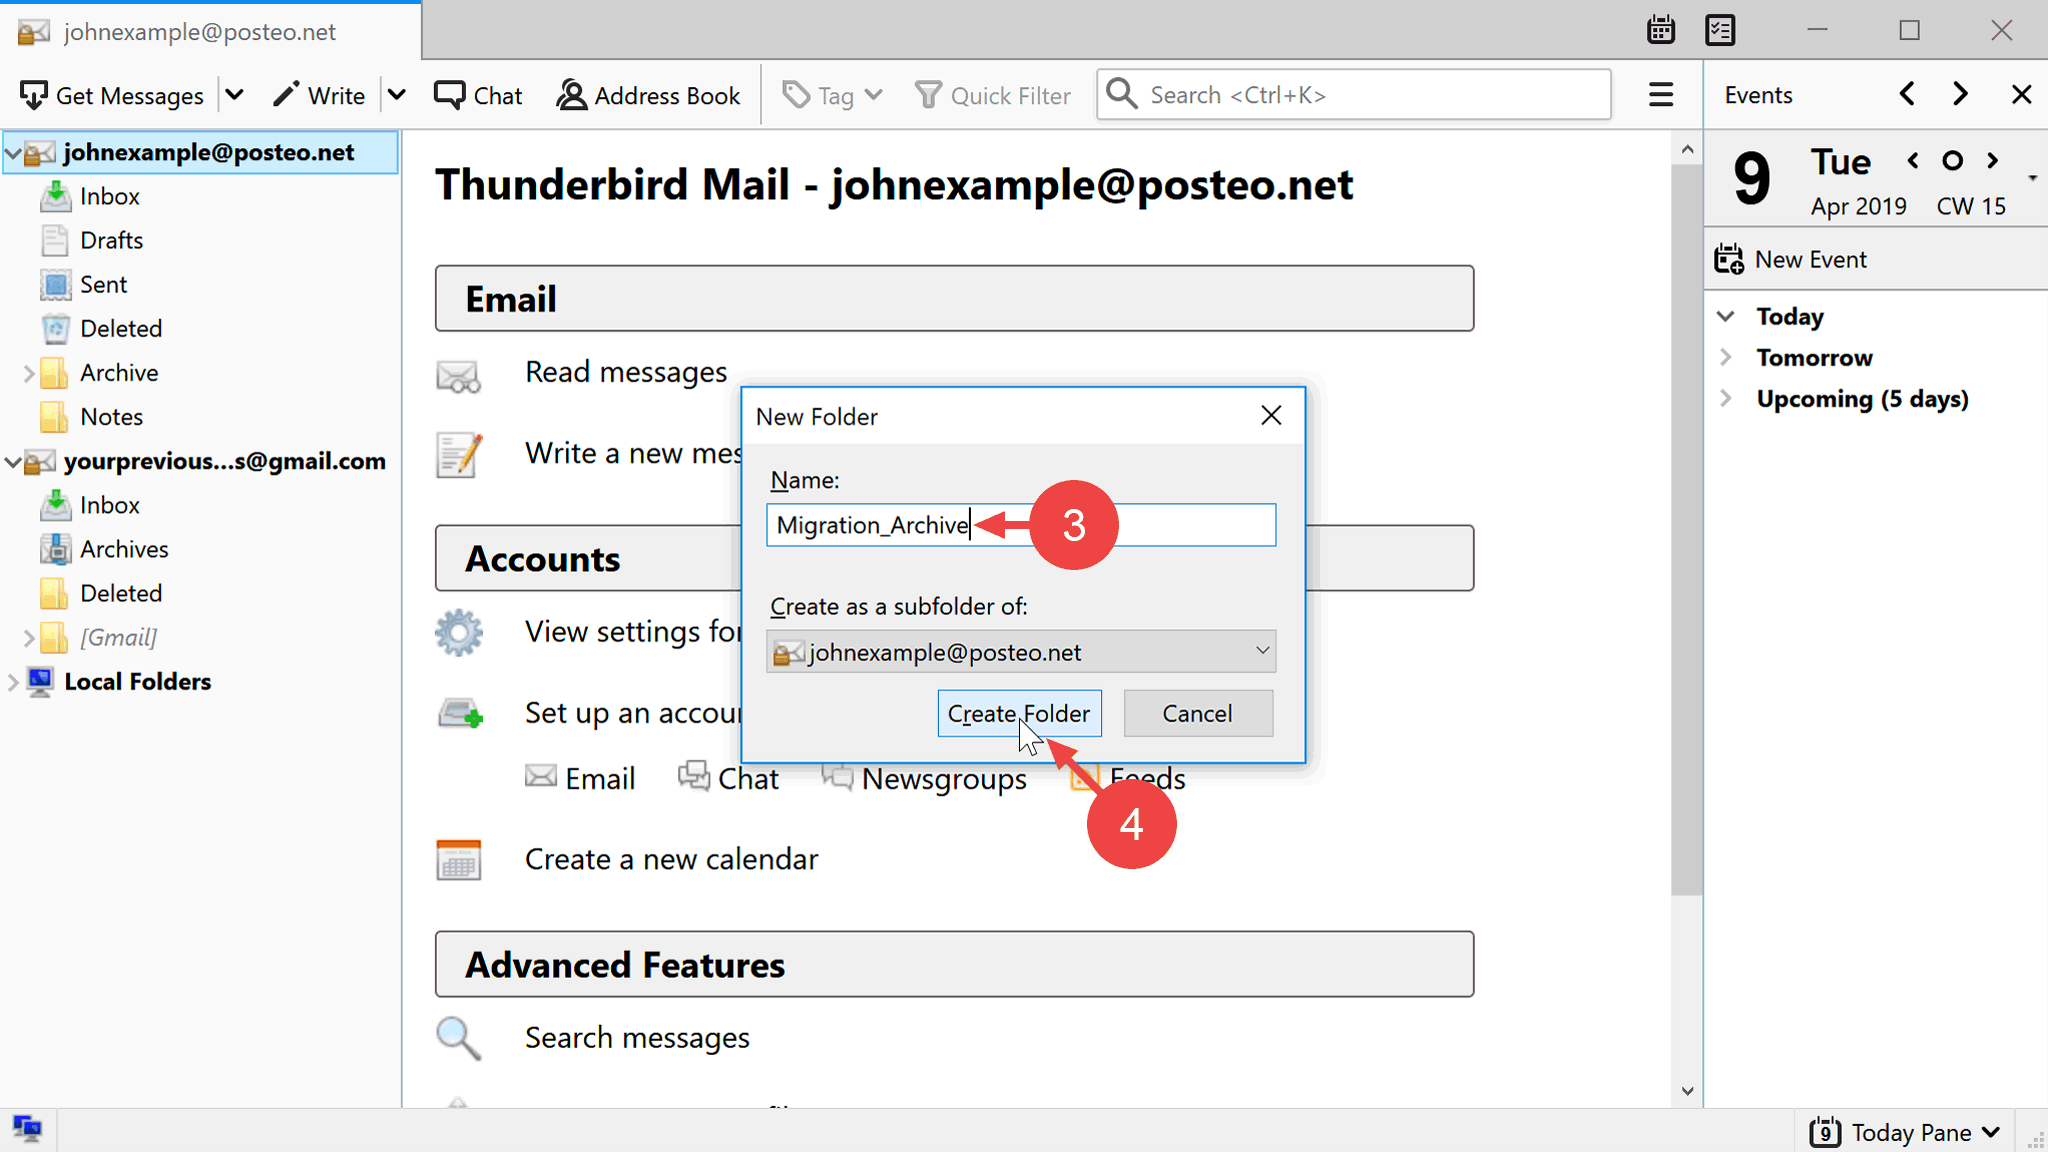 Help - How do I copy emails, contacts and calendars from